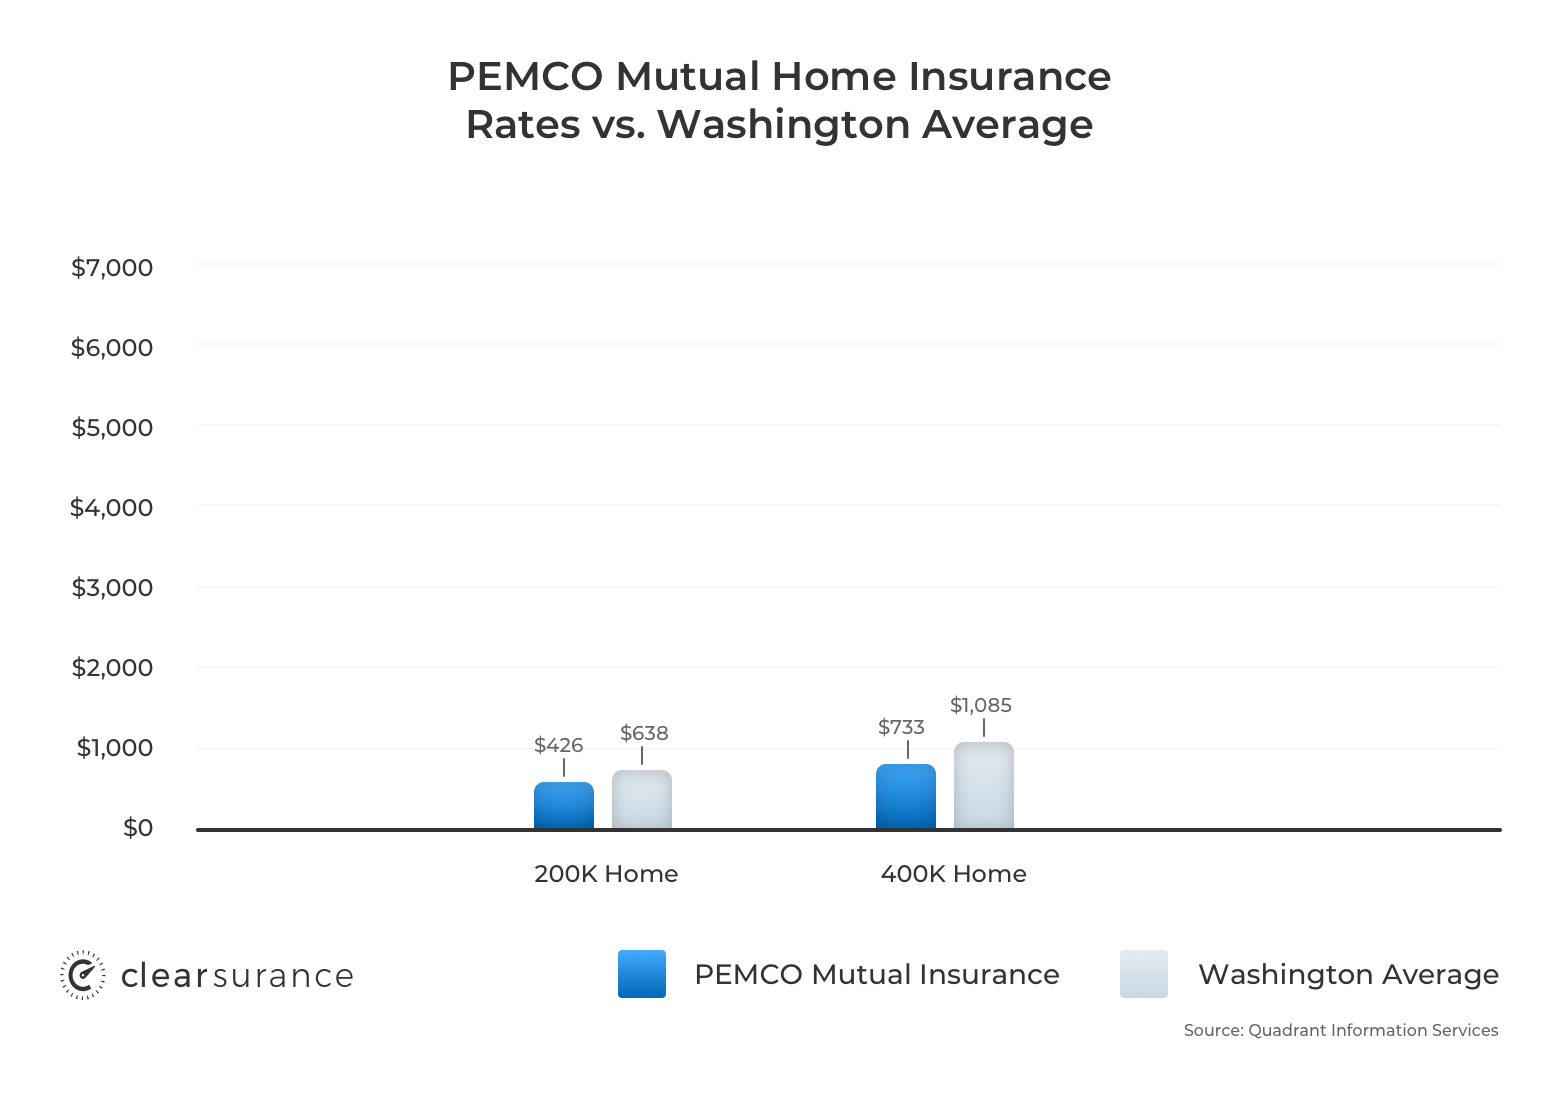 PEMCO homeowners insurance rates